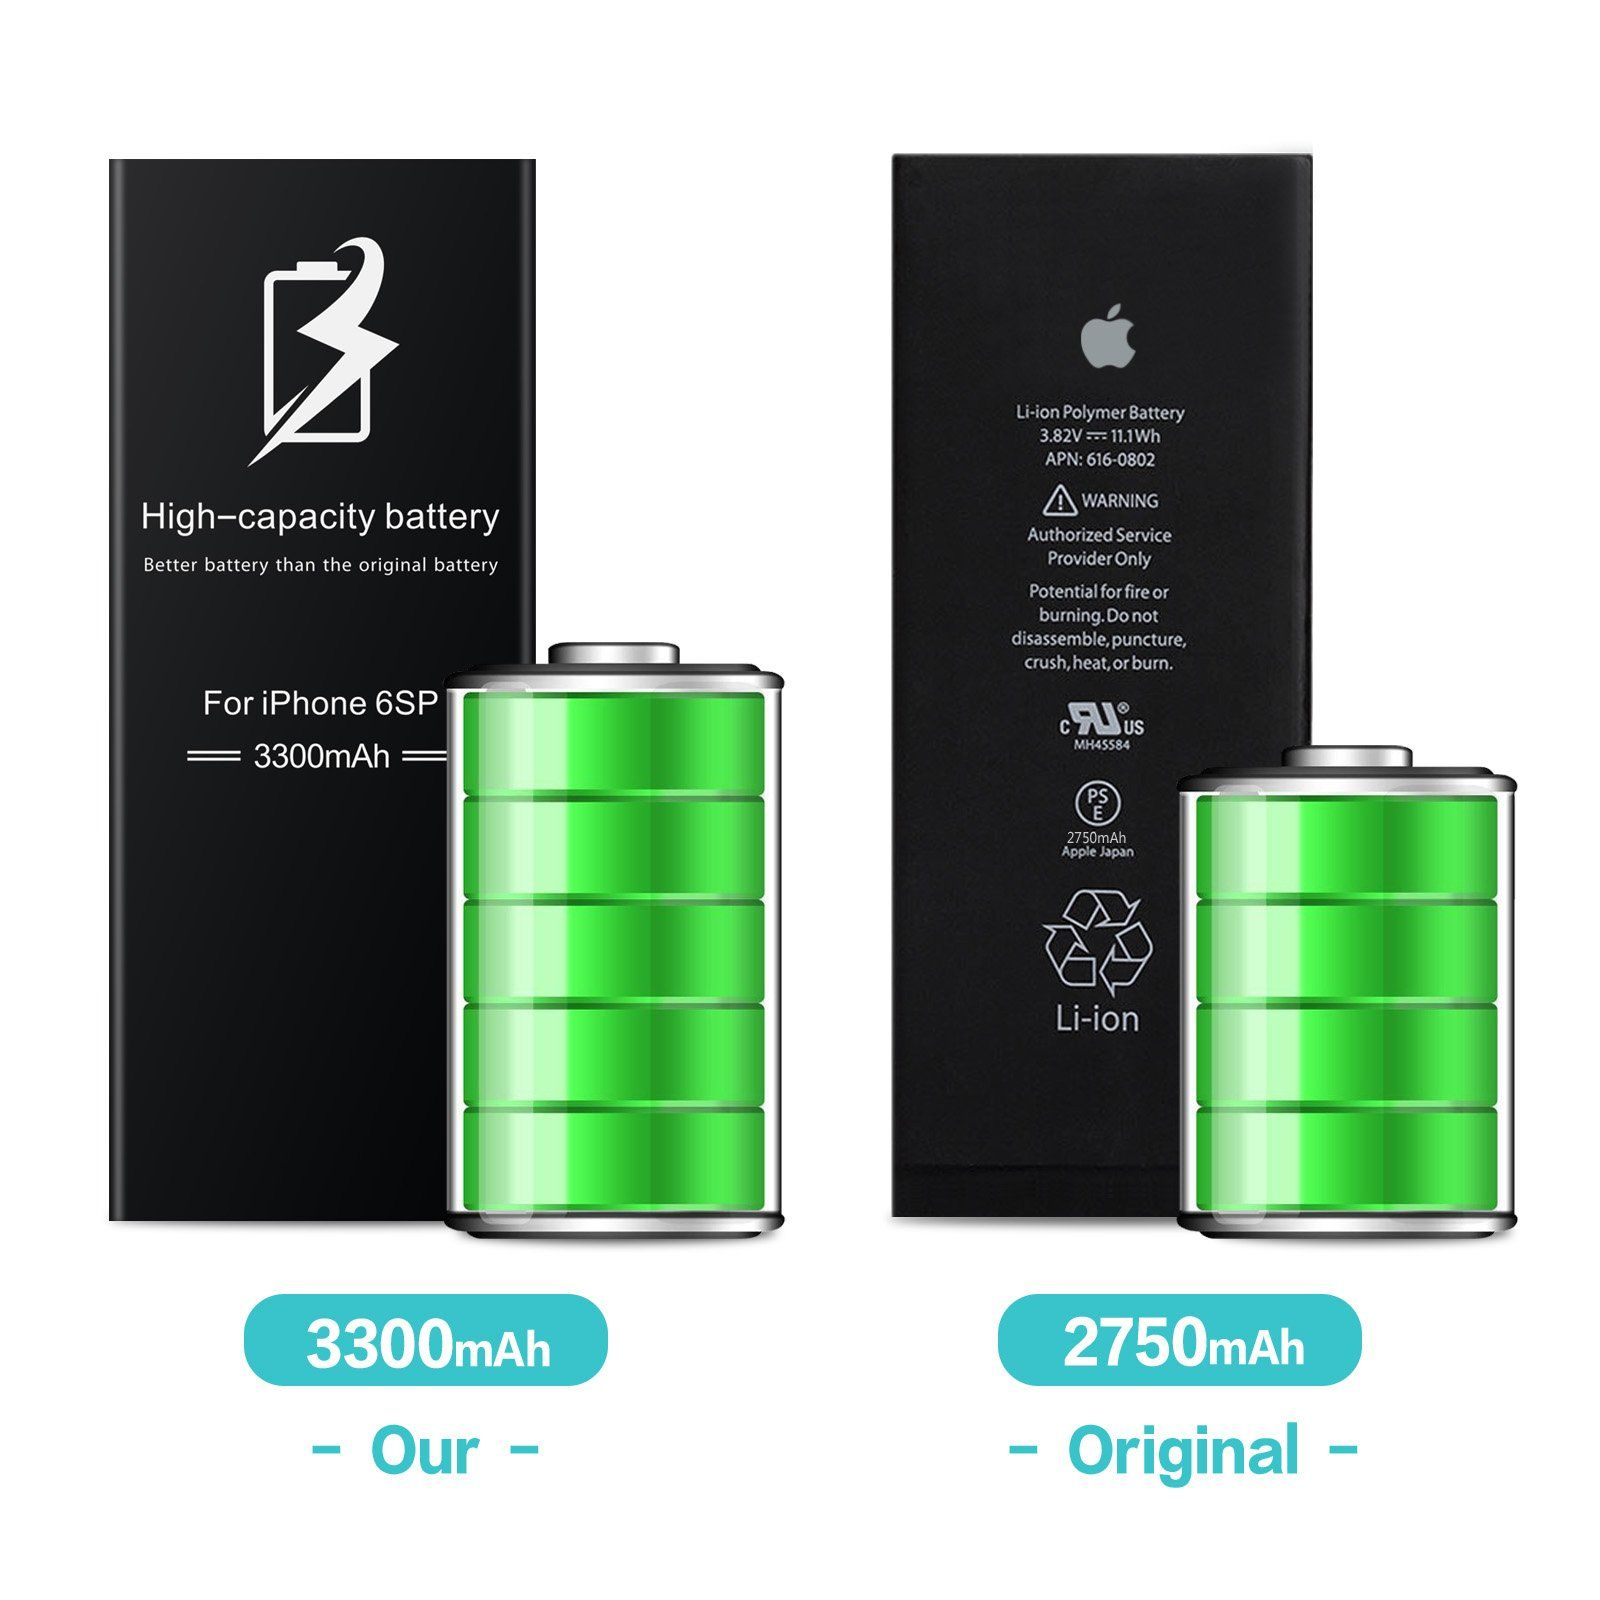 Apple iPhone 6 Plus Batteri & Laddare